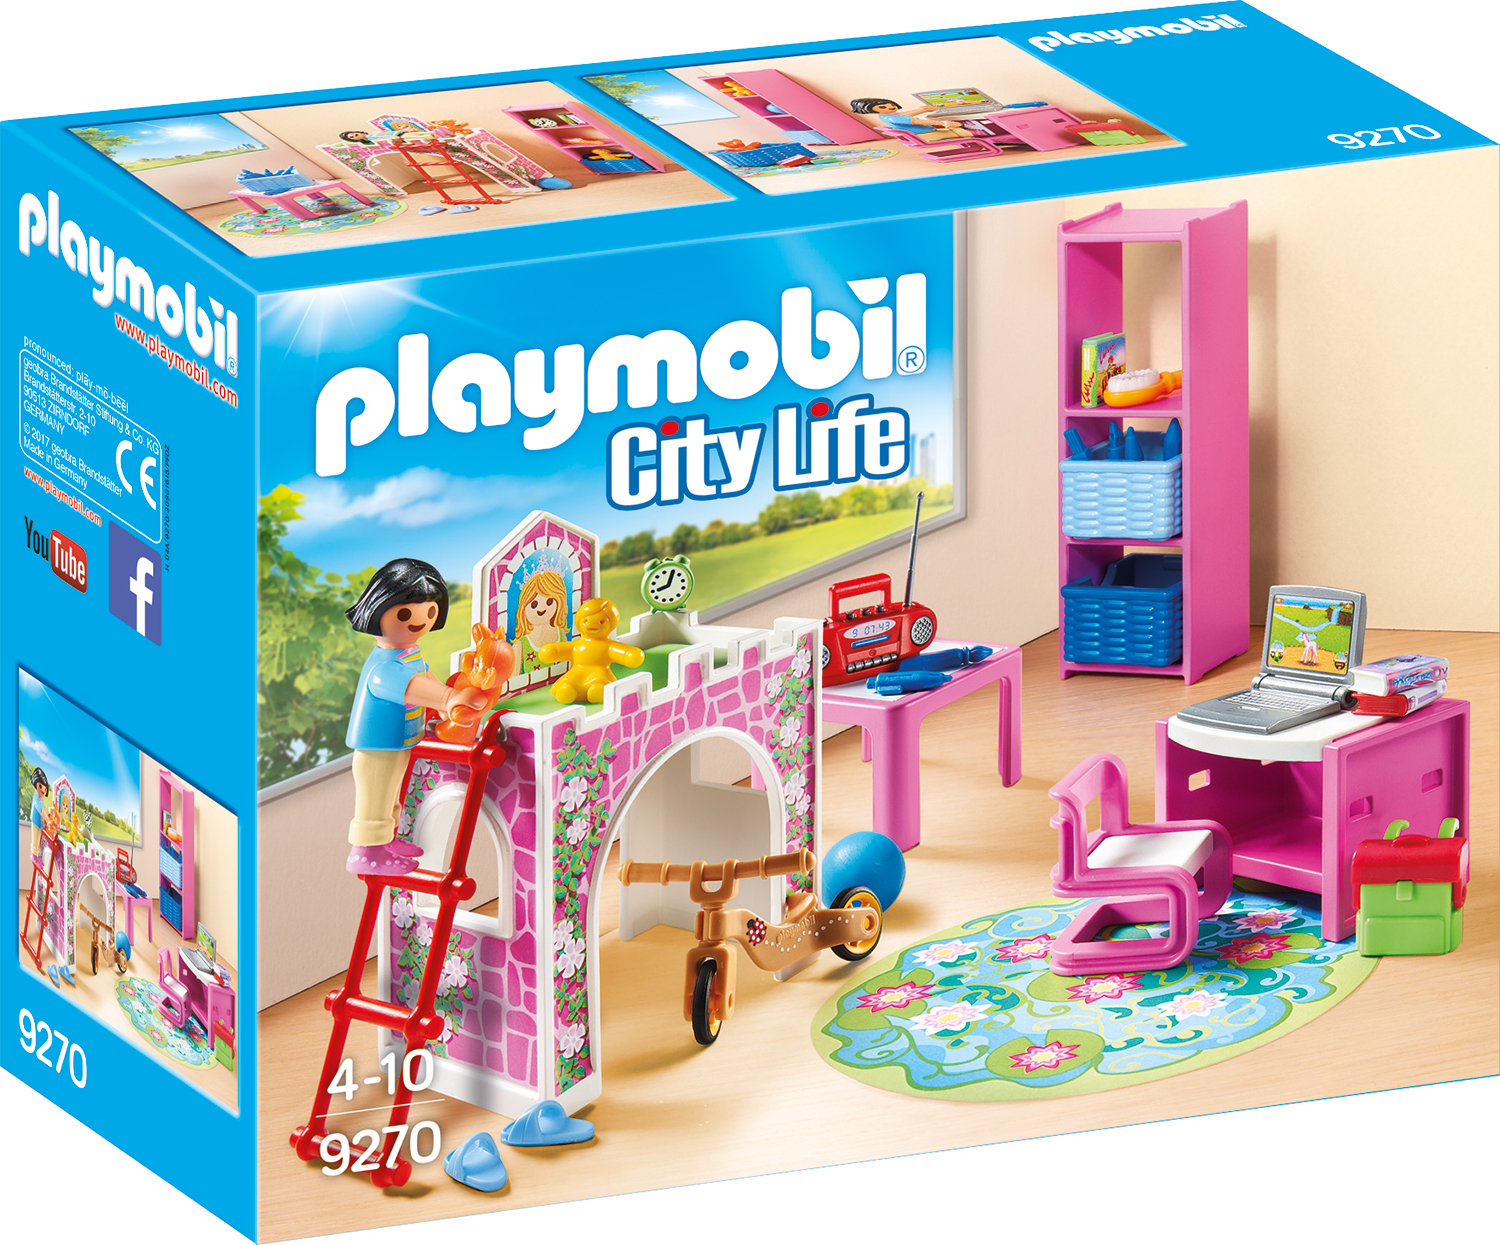 Playmobil das sind die trends 2017 mytoys blog for Kinderzimmer 2018